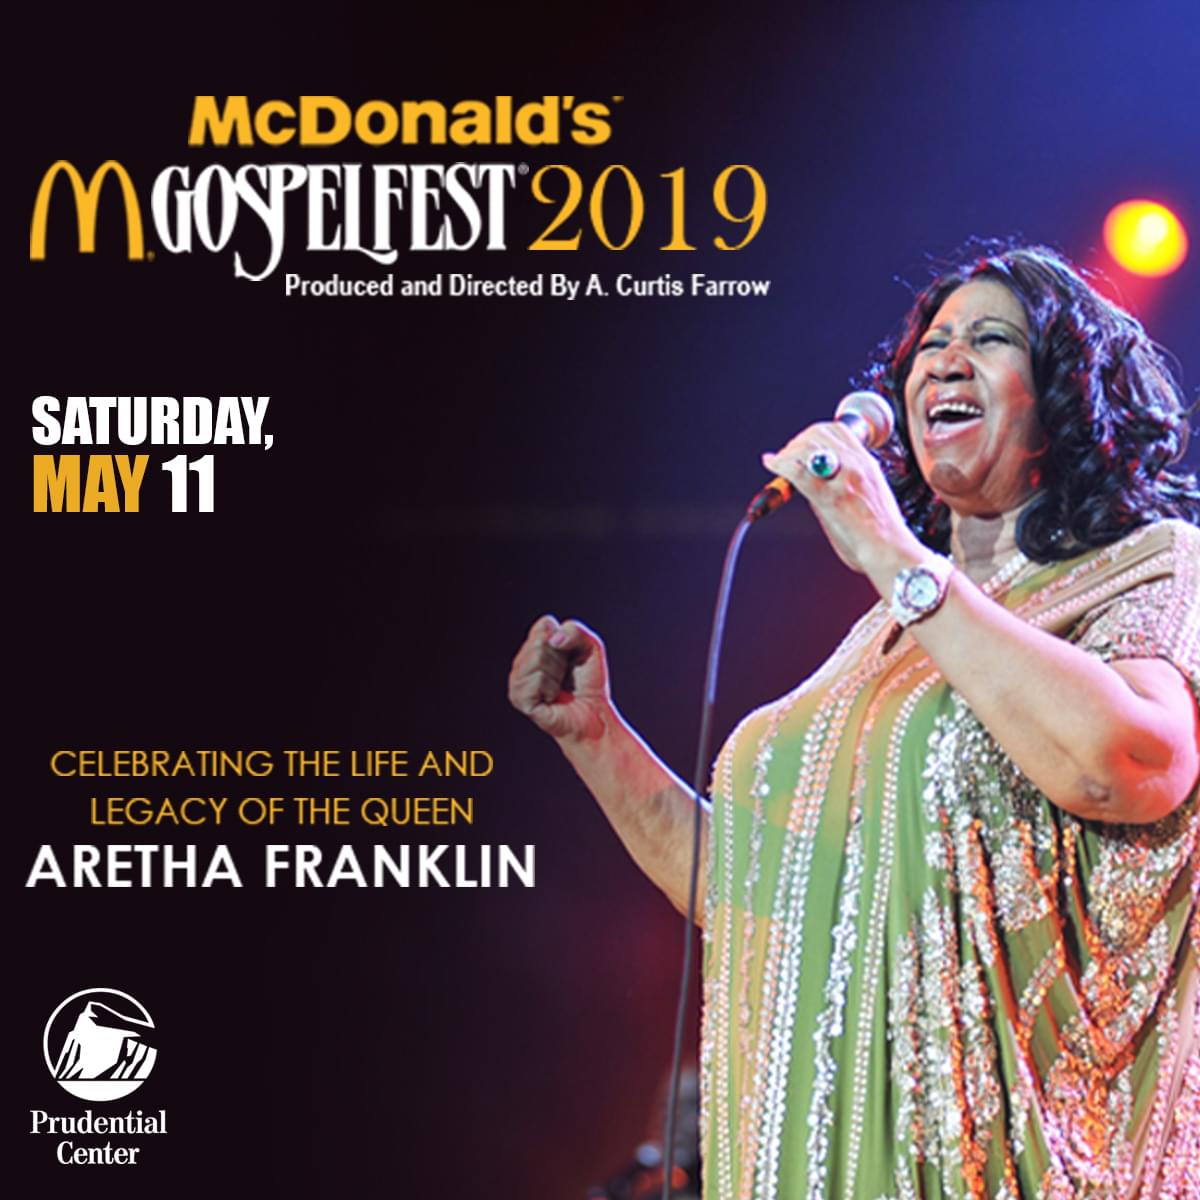 Win Tickets to McDonald's Gospelfest!